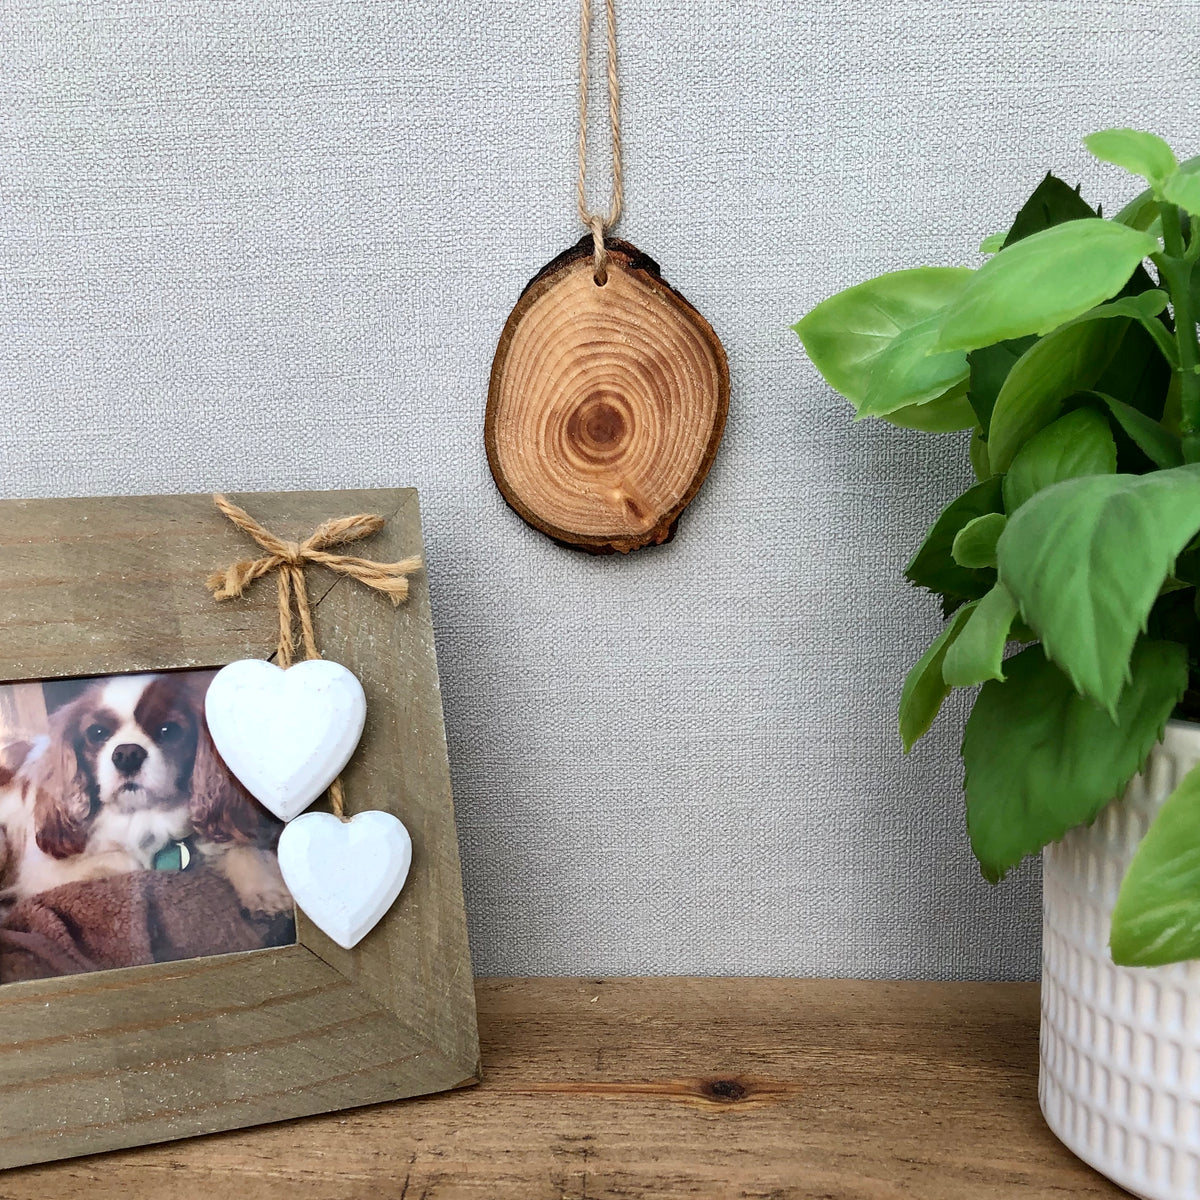 A wood slice air freshener displayed near a photo frame and a plant